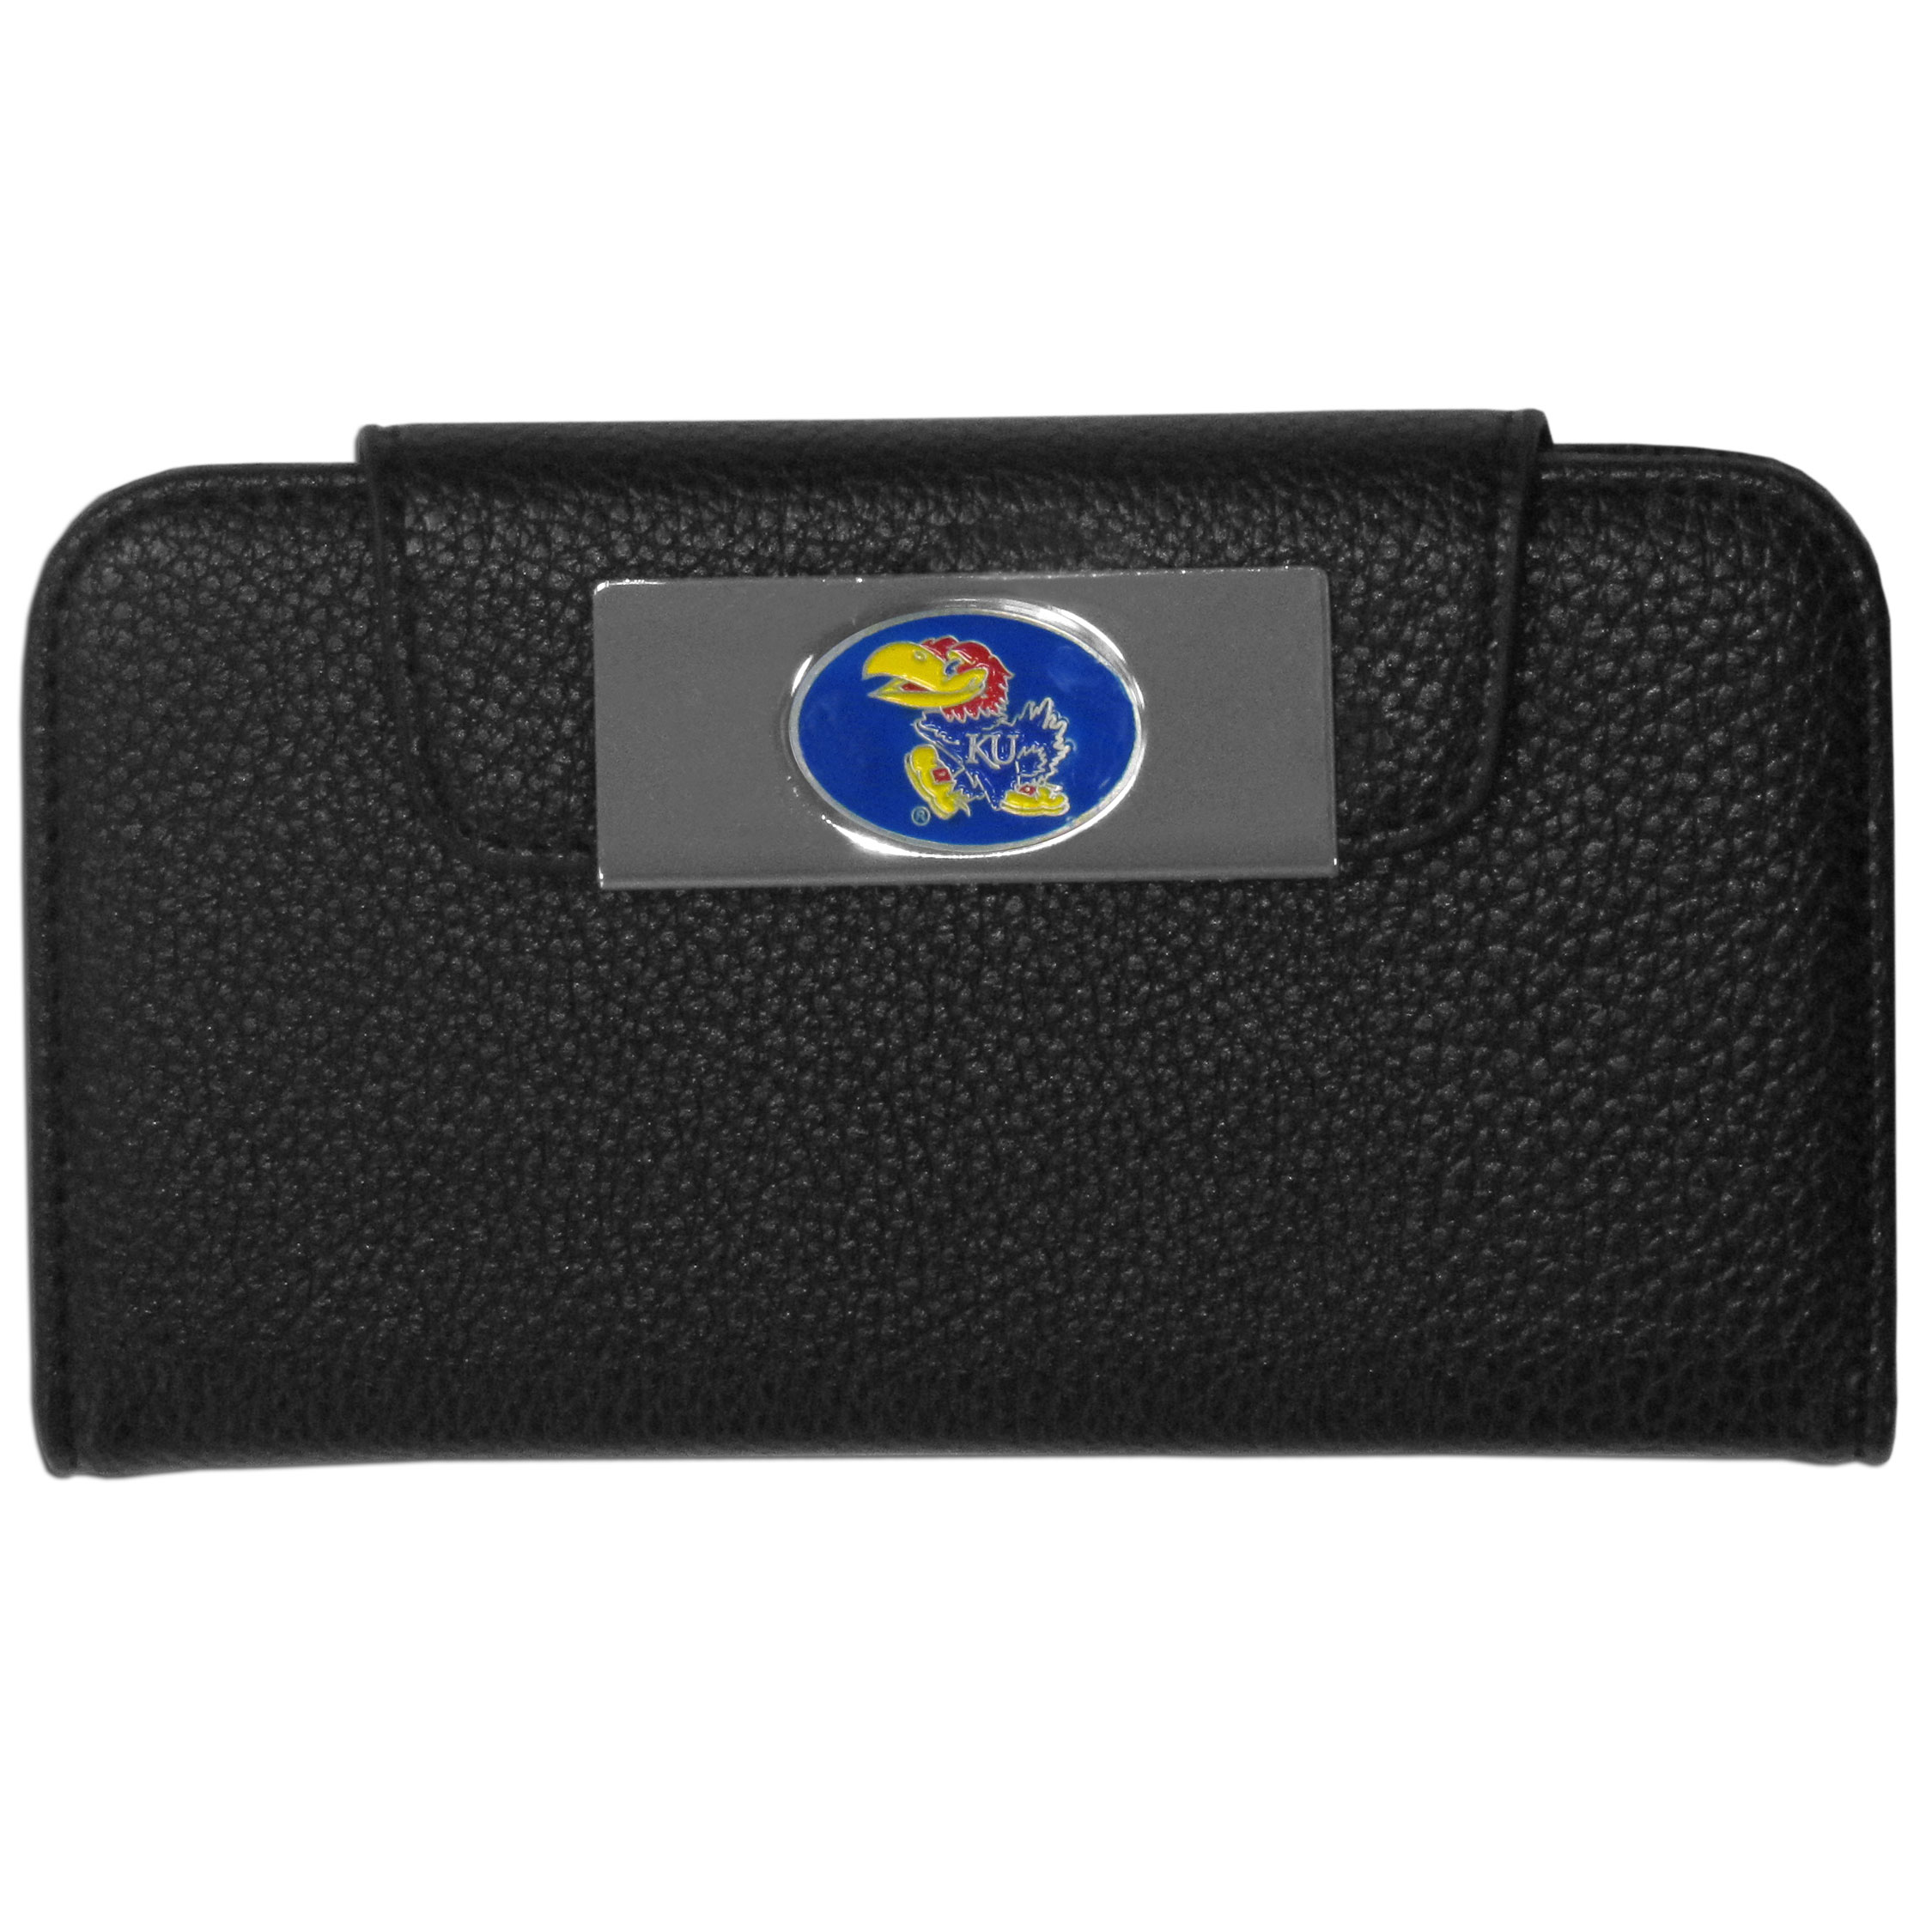 Kansas Jayhawks Samsung Galaxy S4 Wallet Case - This new & wildly popular case is ideal for those who like to travel light! The stylish case has an inner hard shell that securely holds your phone while allowing complete access to the phone's functionality. The flip cover has slots for credit cards, business cards and identification. The magnetic flip cover has a metal Kansas Jayhawks emblem on a high polish chrome backing. Fits the Samsung Galaxy S4